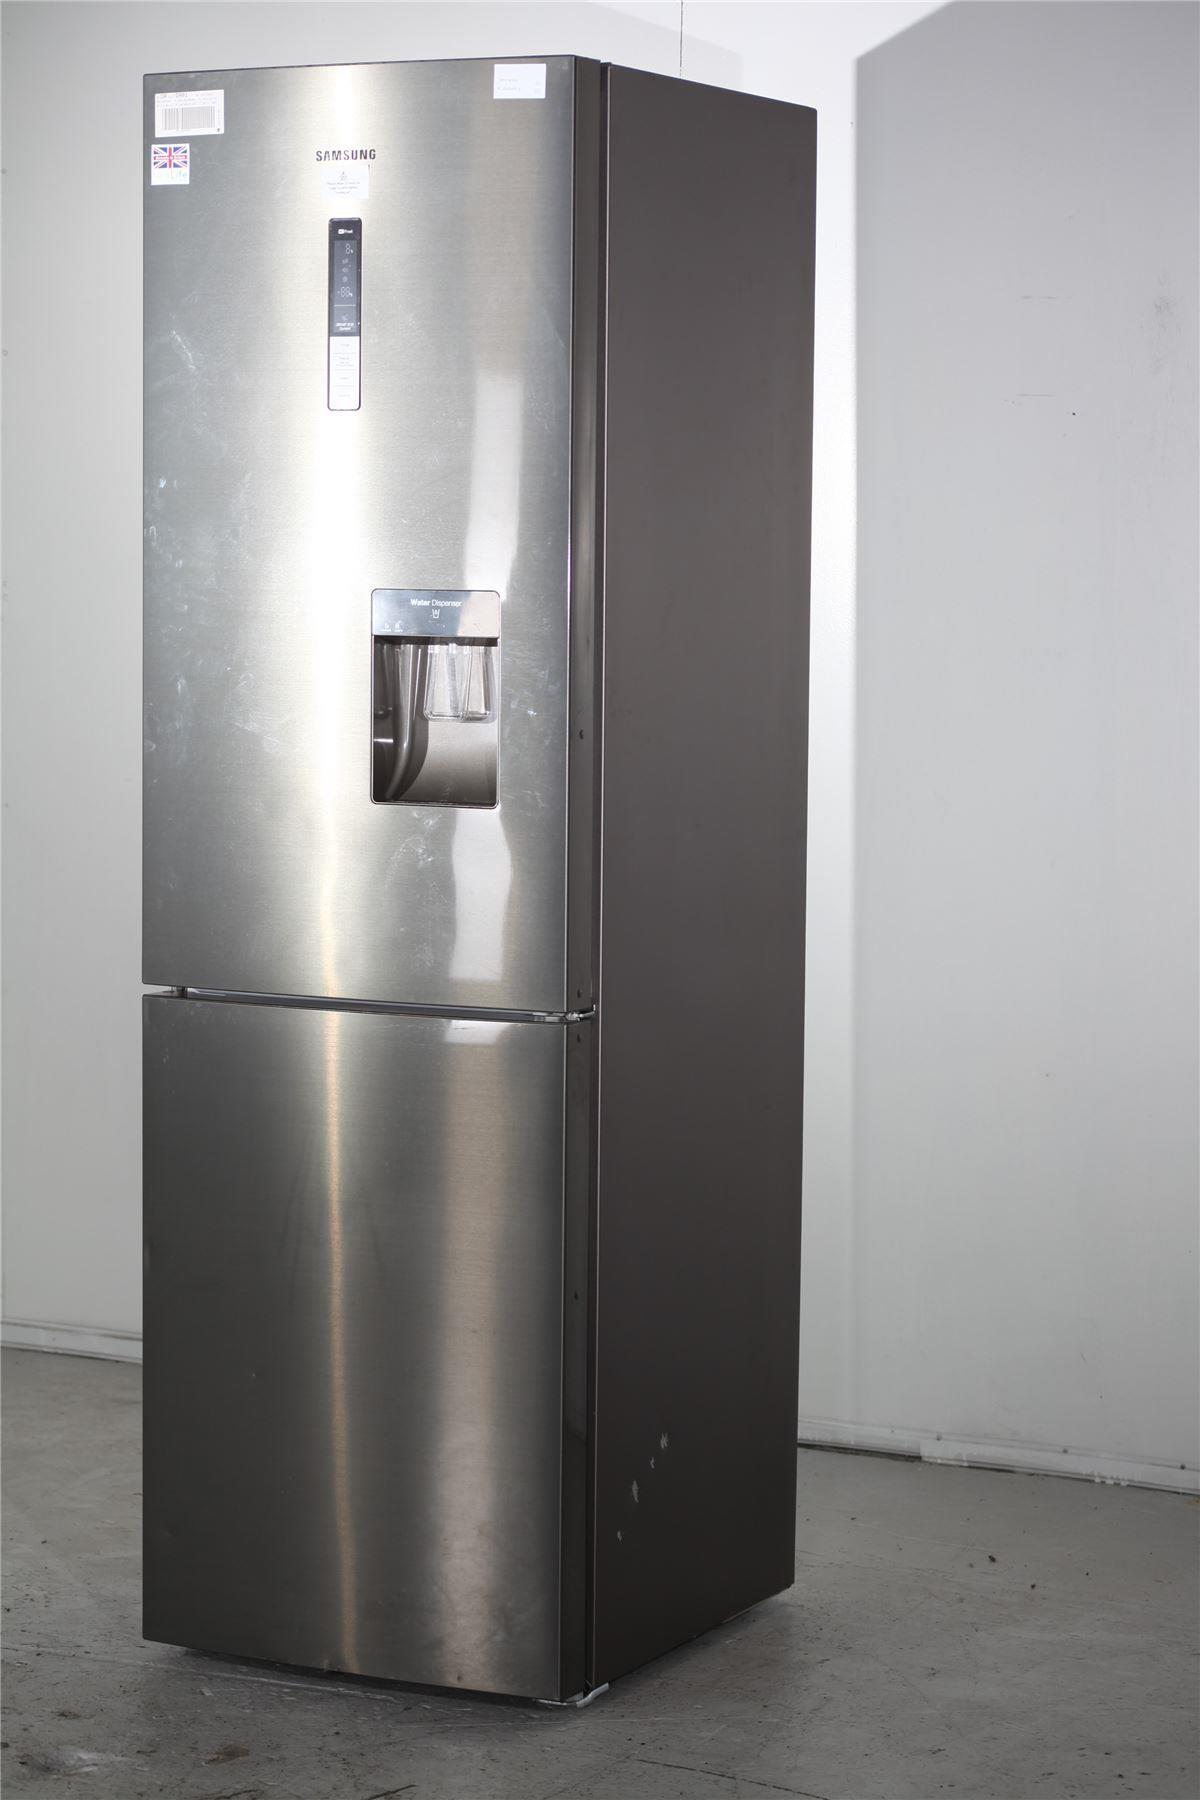 Samsung Fridge Freezer Amp Water Dispenser Rl58gpeih